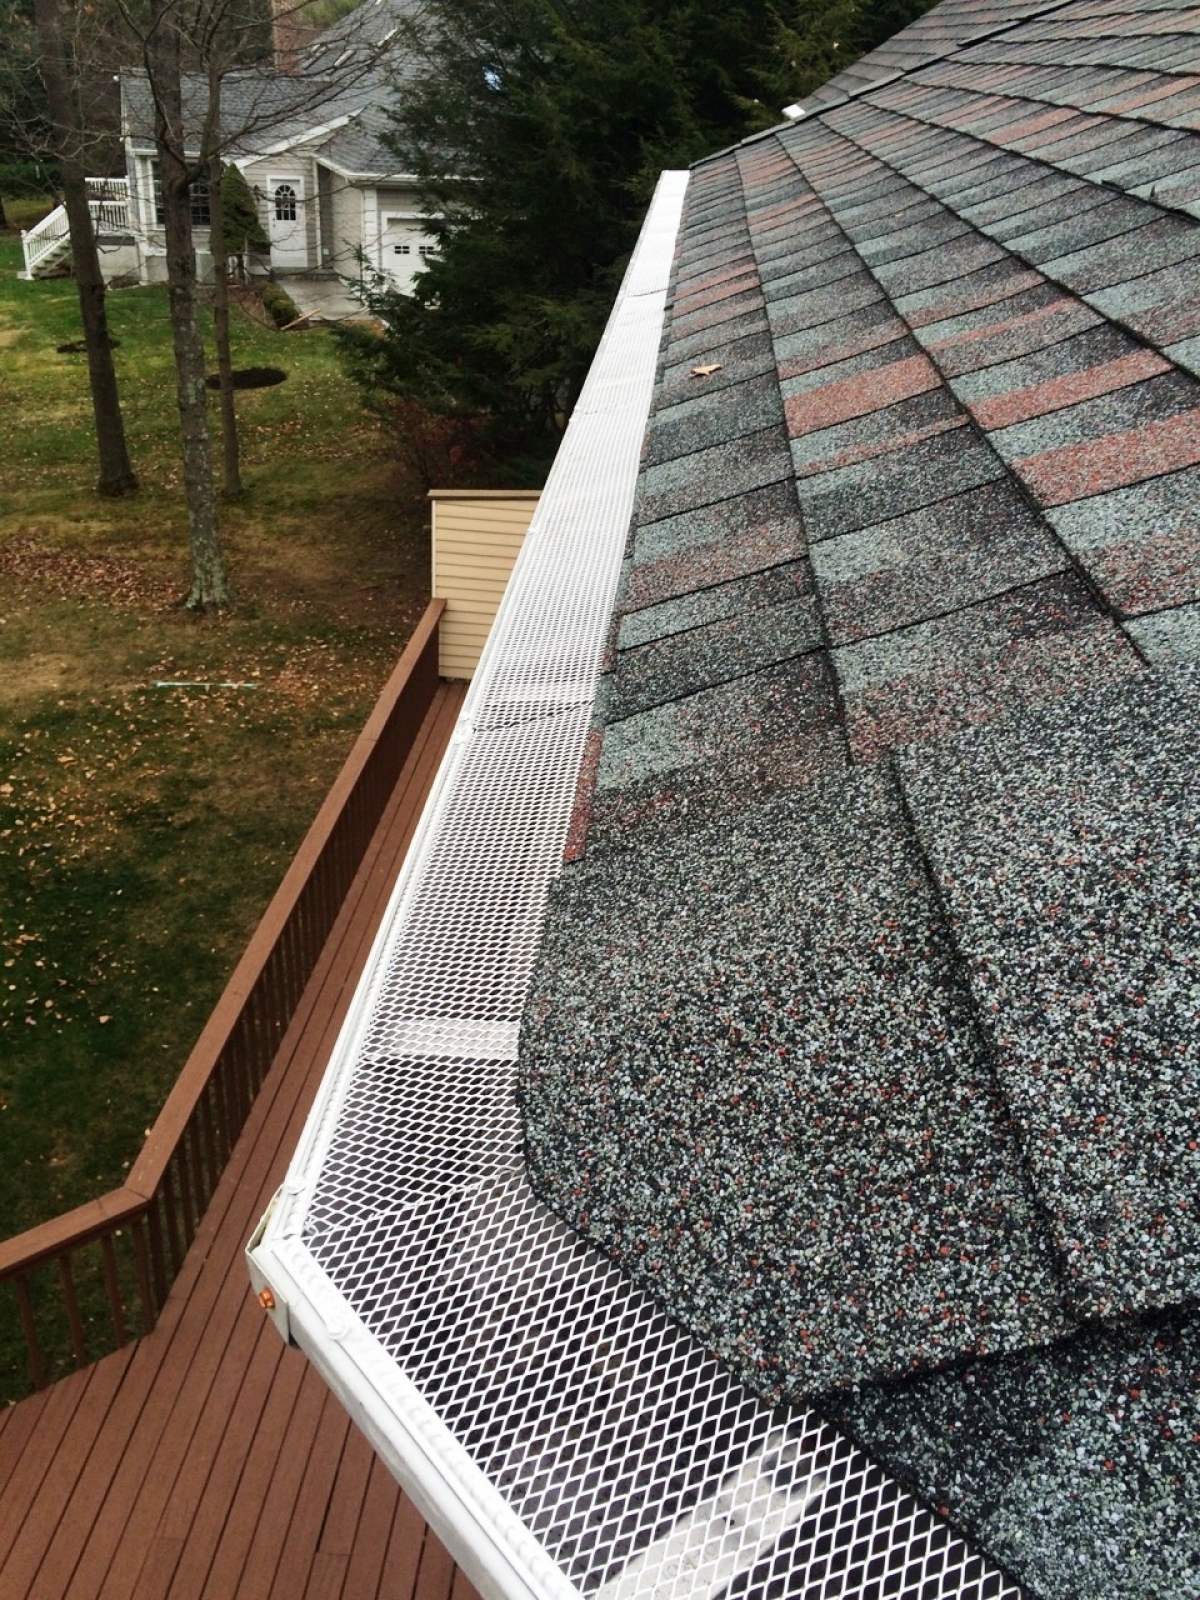 Install Gutter Covers to Avoid Blockages